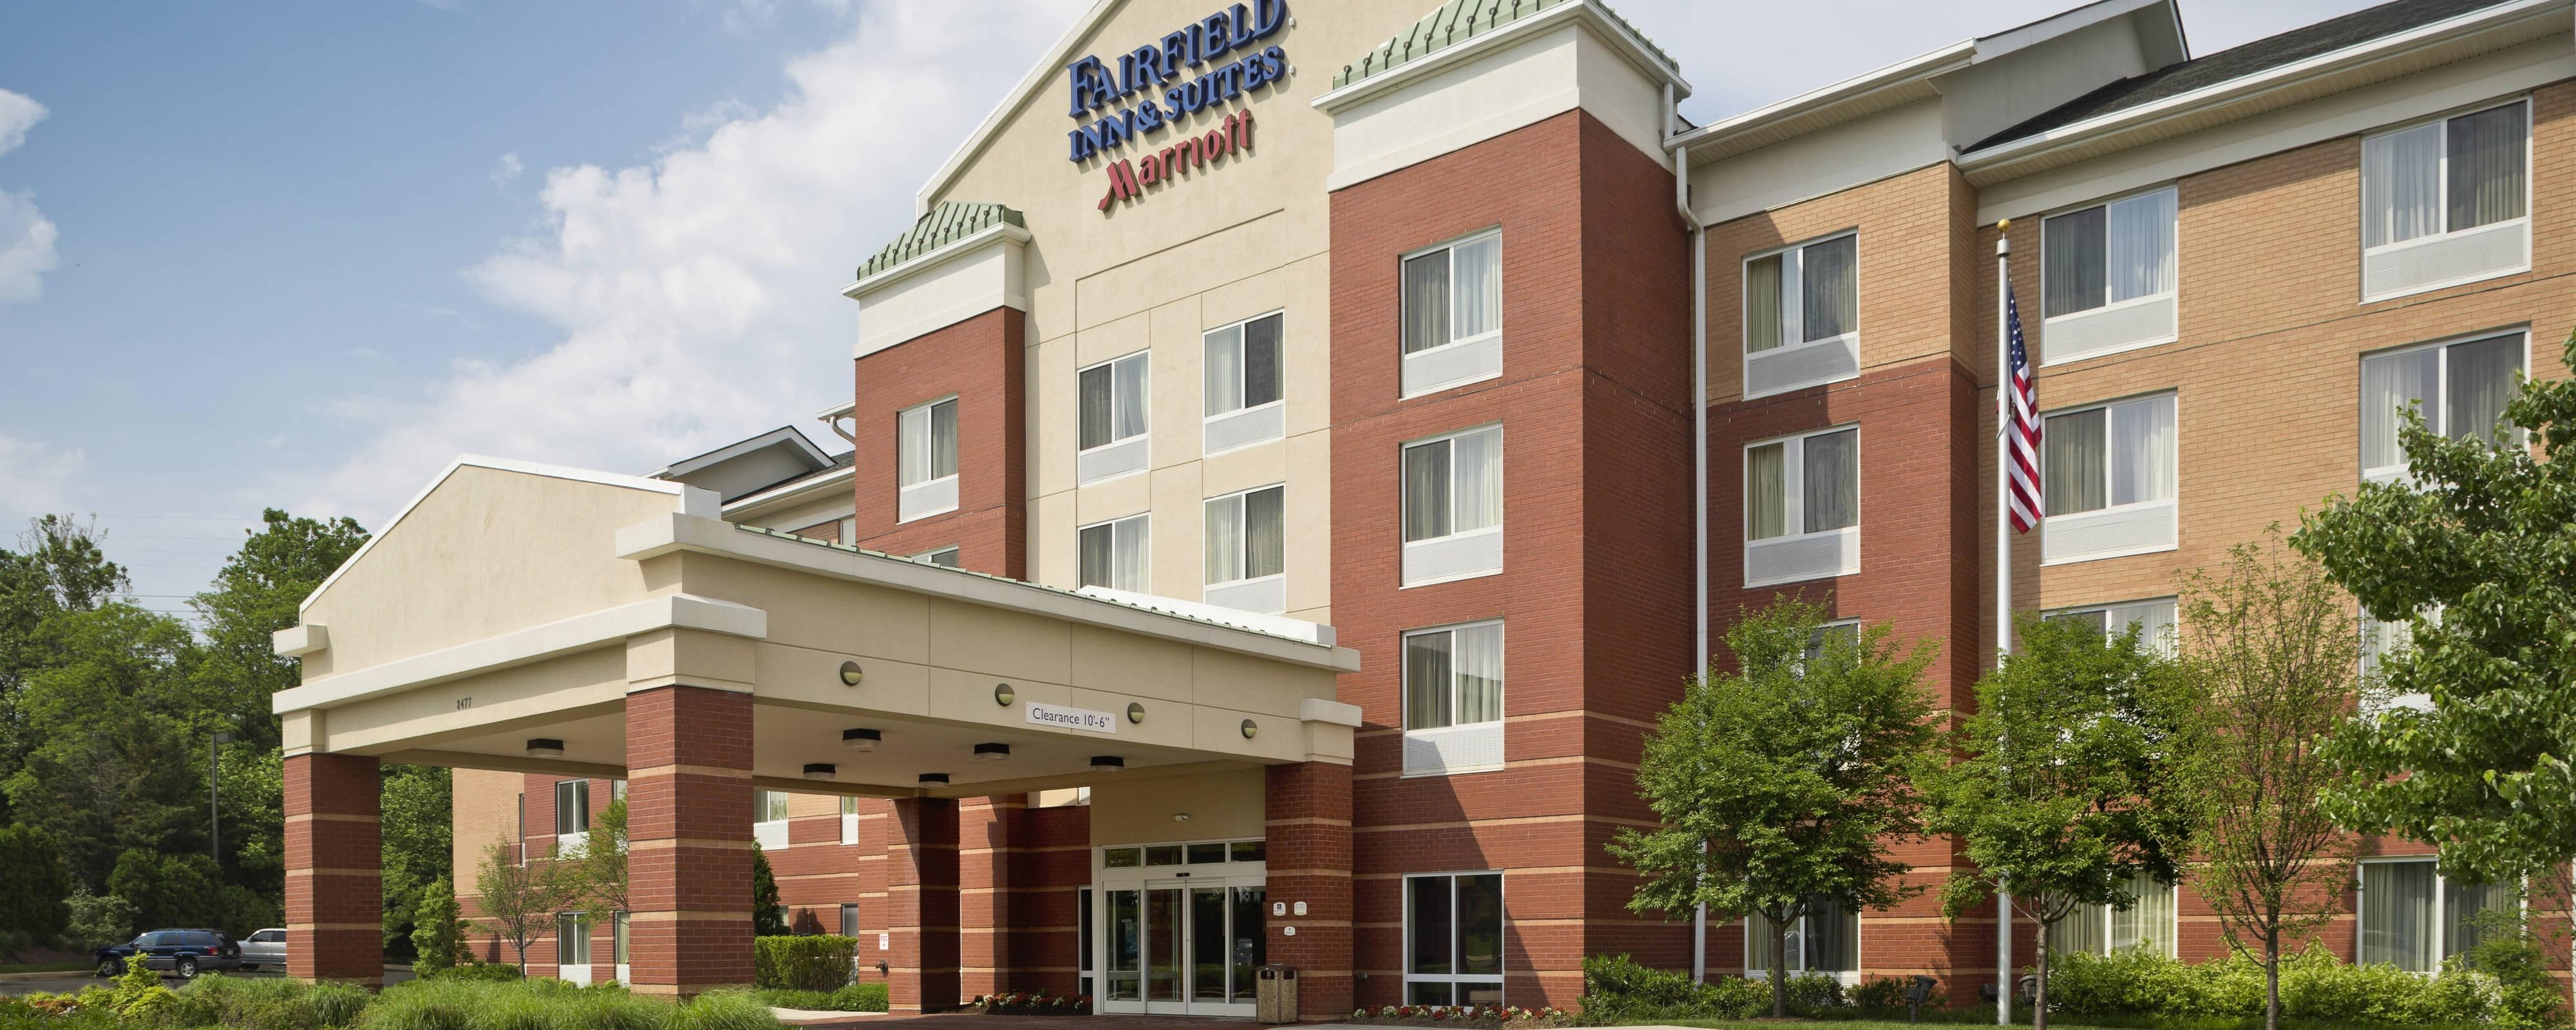 Exterior Fairfield Inn & Suites White Marsh